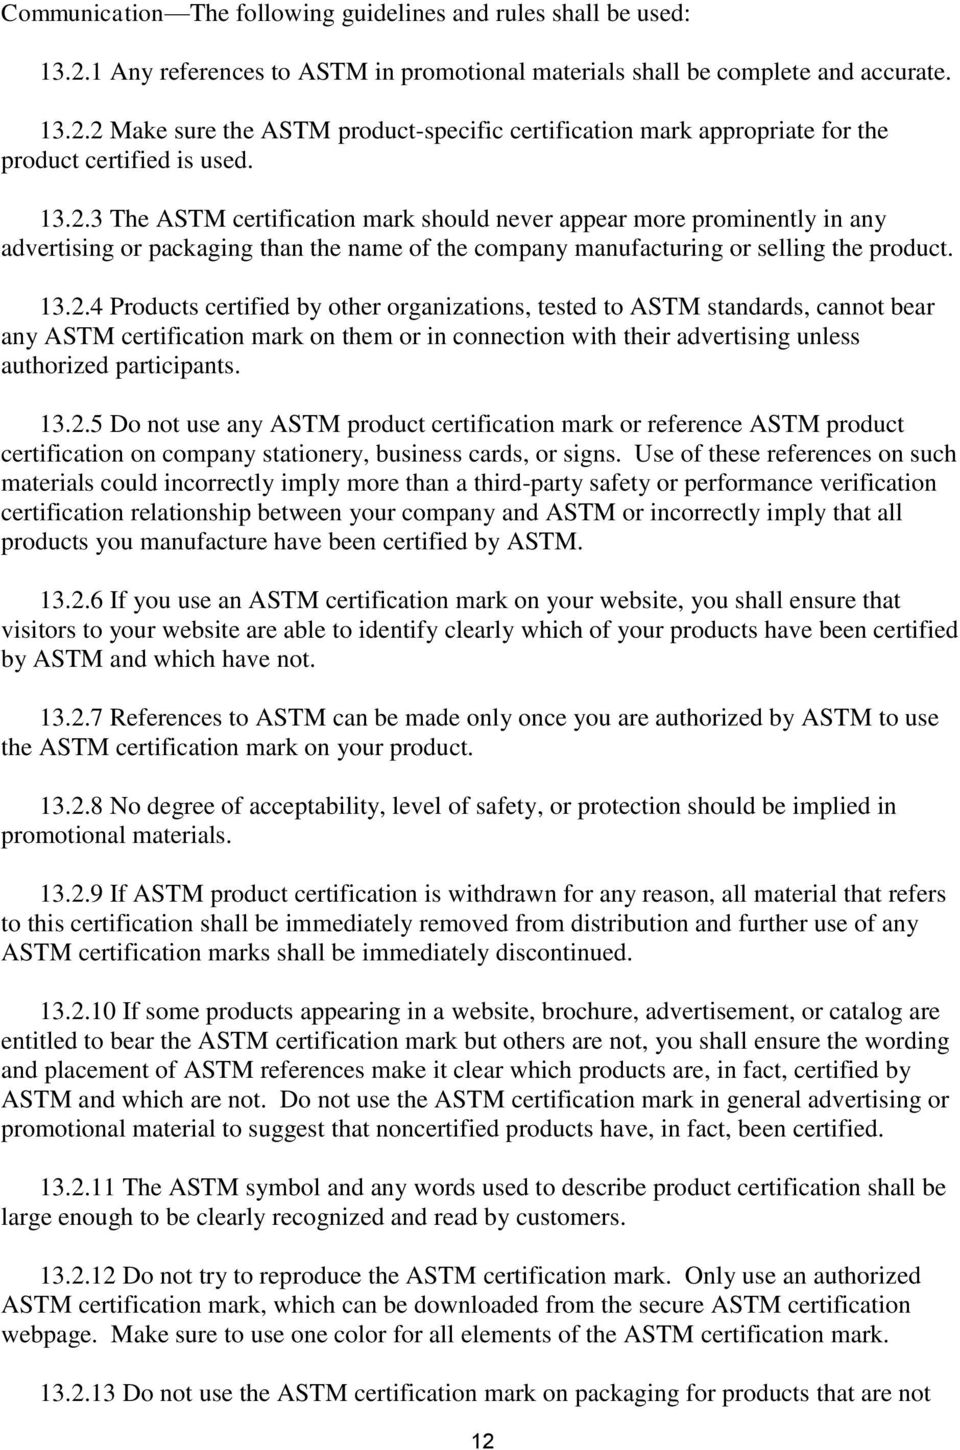 13.2.5 Do not use any ASTM product certification mark or reference ASTM product certification on company stationery, business cards, or signs.